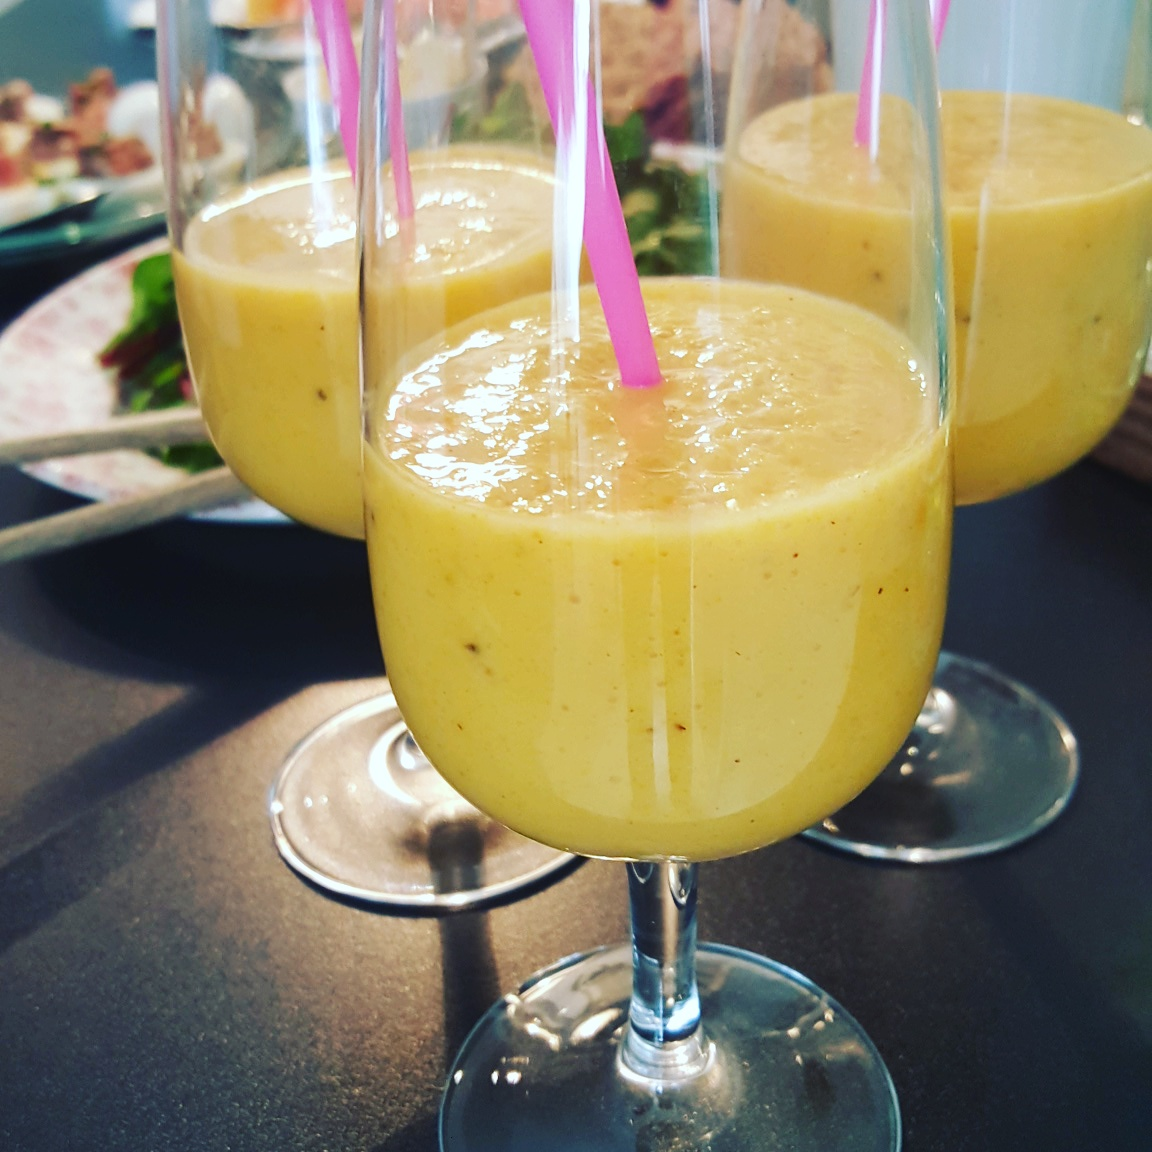 Gul härlig Golden Milk Smoothie i glas